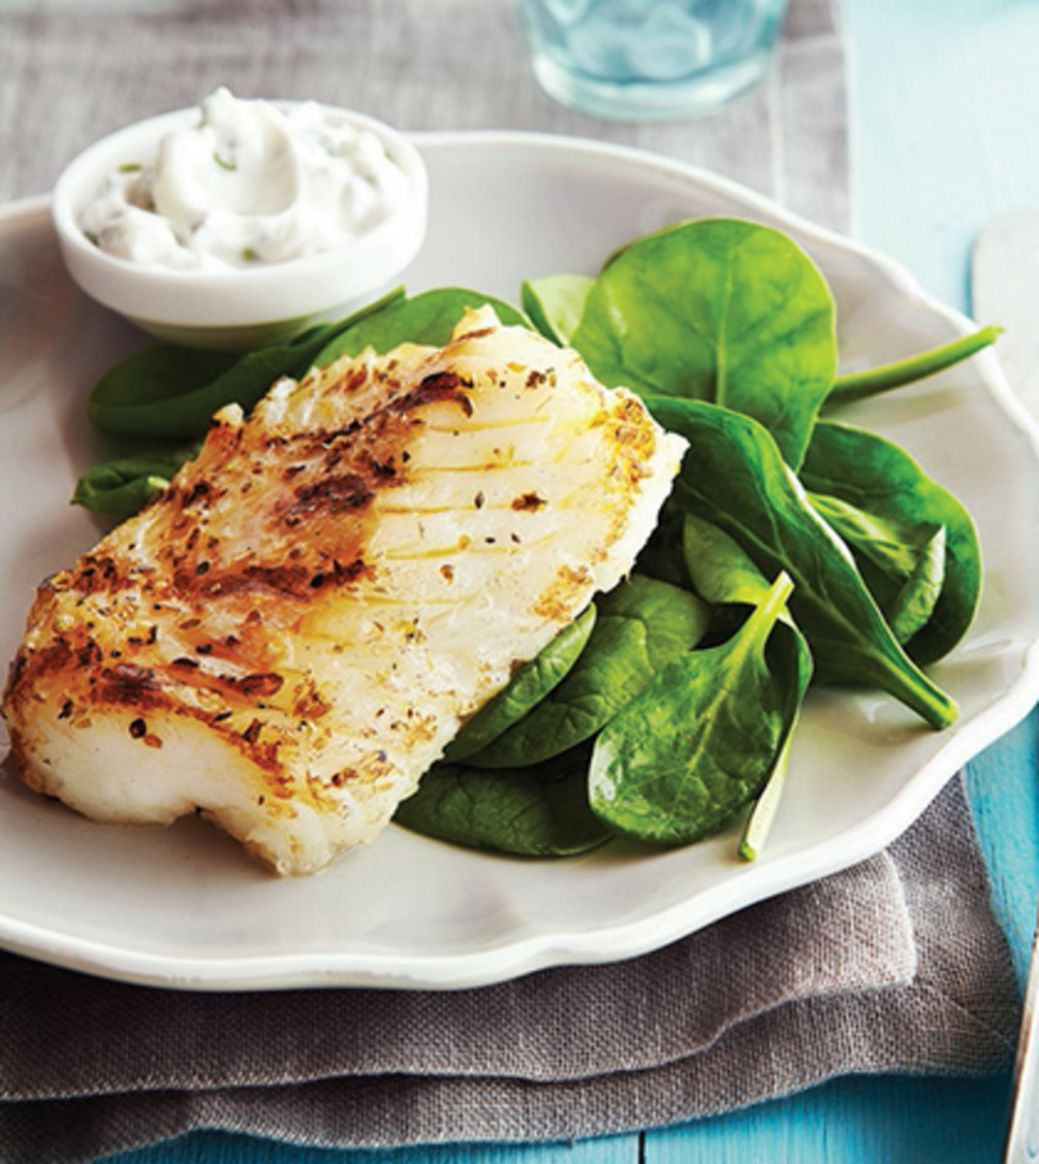 Grilled Cod Recipe | Easy Cod Recipe - Clean Eating Magazine